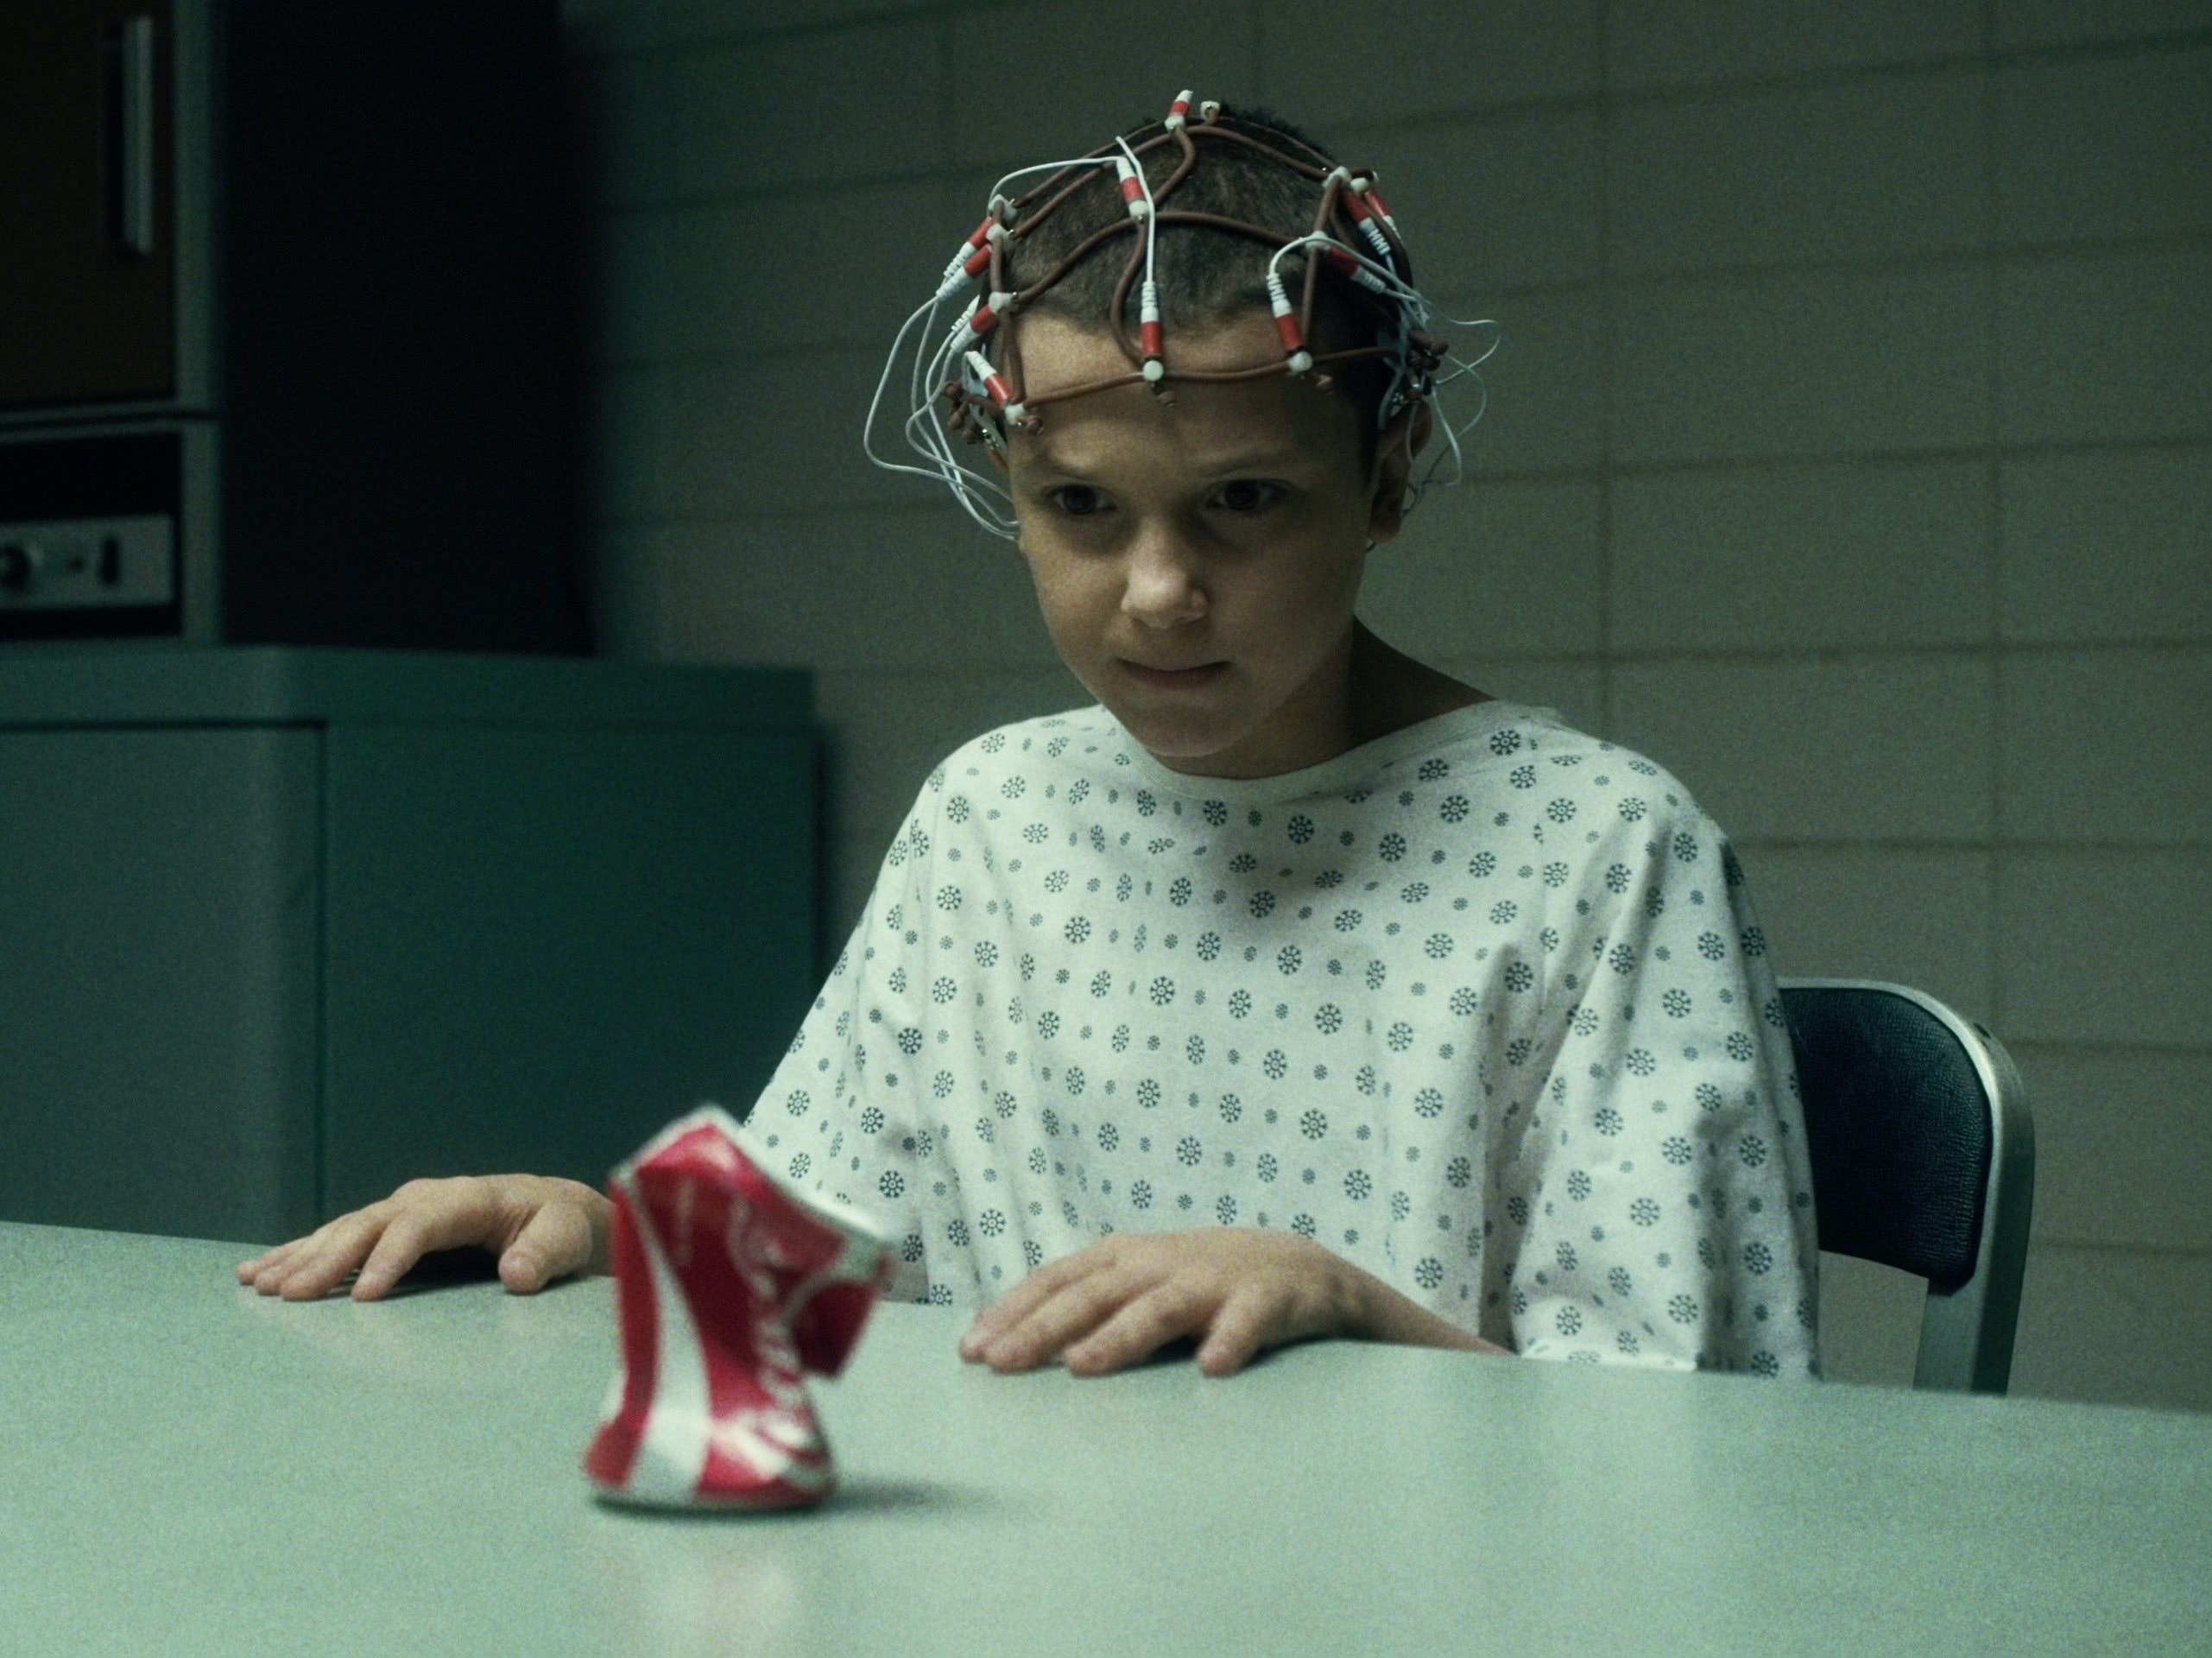 'Stranger Things' Ups the Cred of Netflix's Original Series